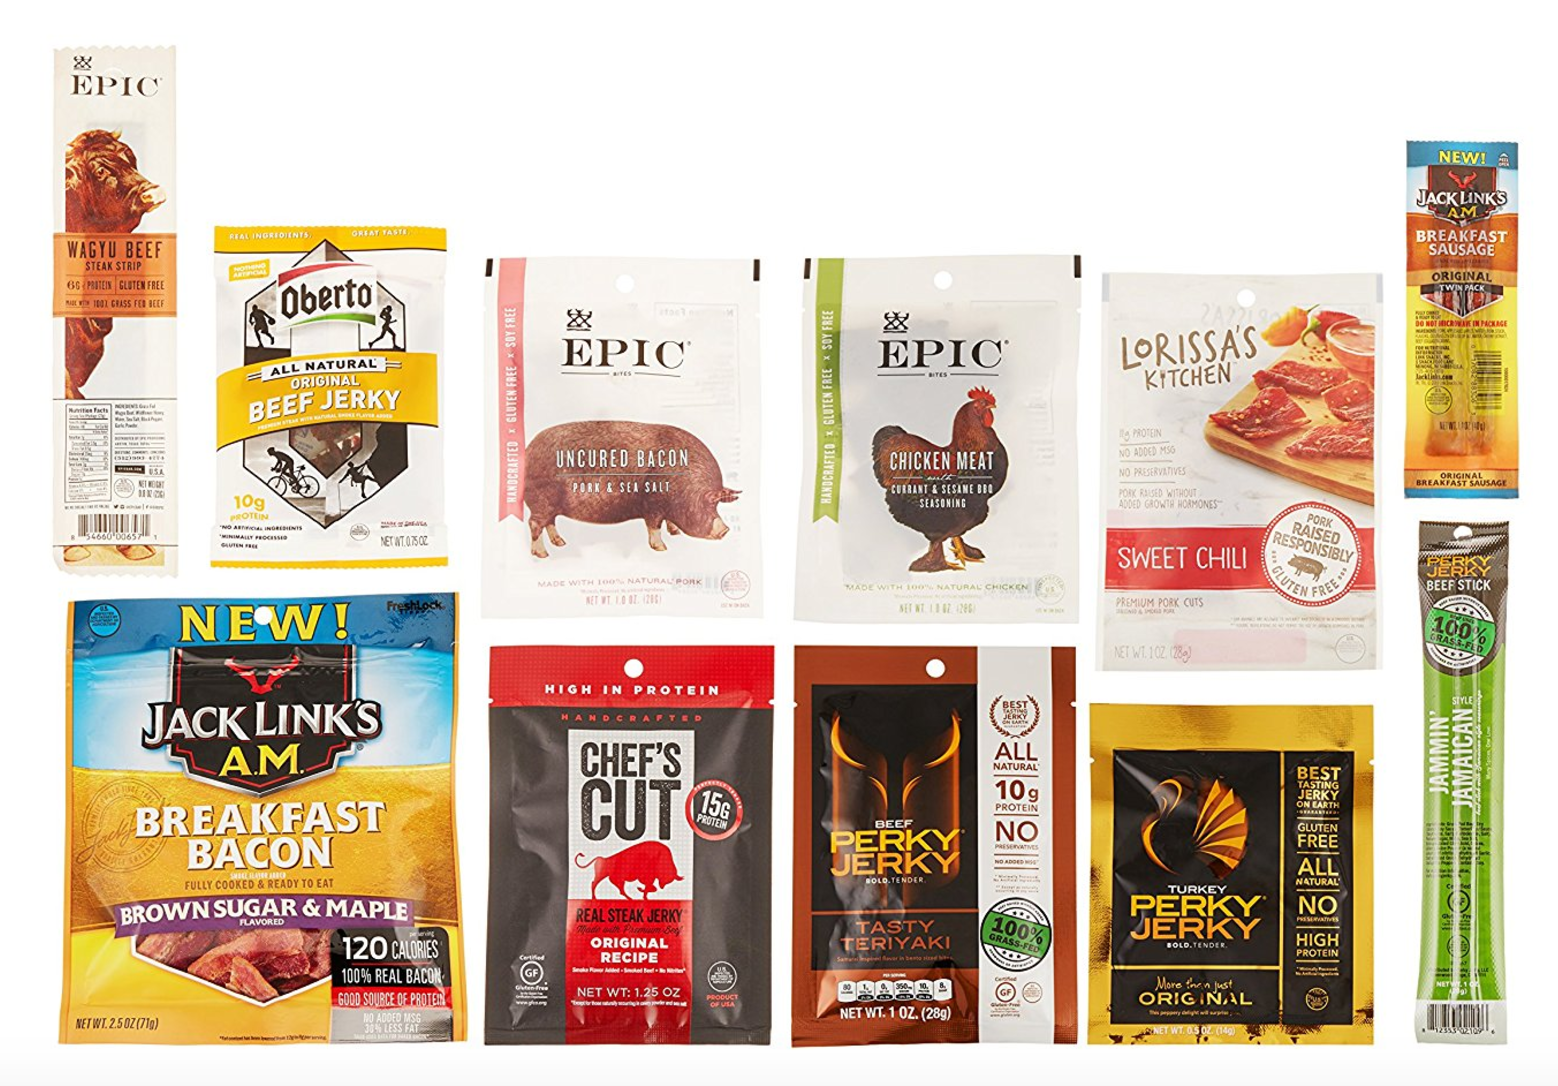 *WILL SELL OUT* Jerky Sample Box, 10 or more items $9.99 + $9.99 credit to Spend After Purchase!